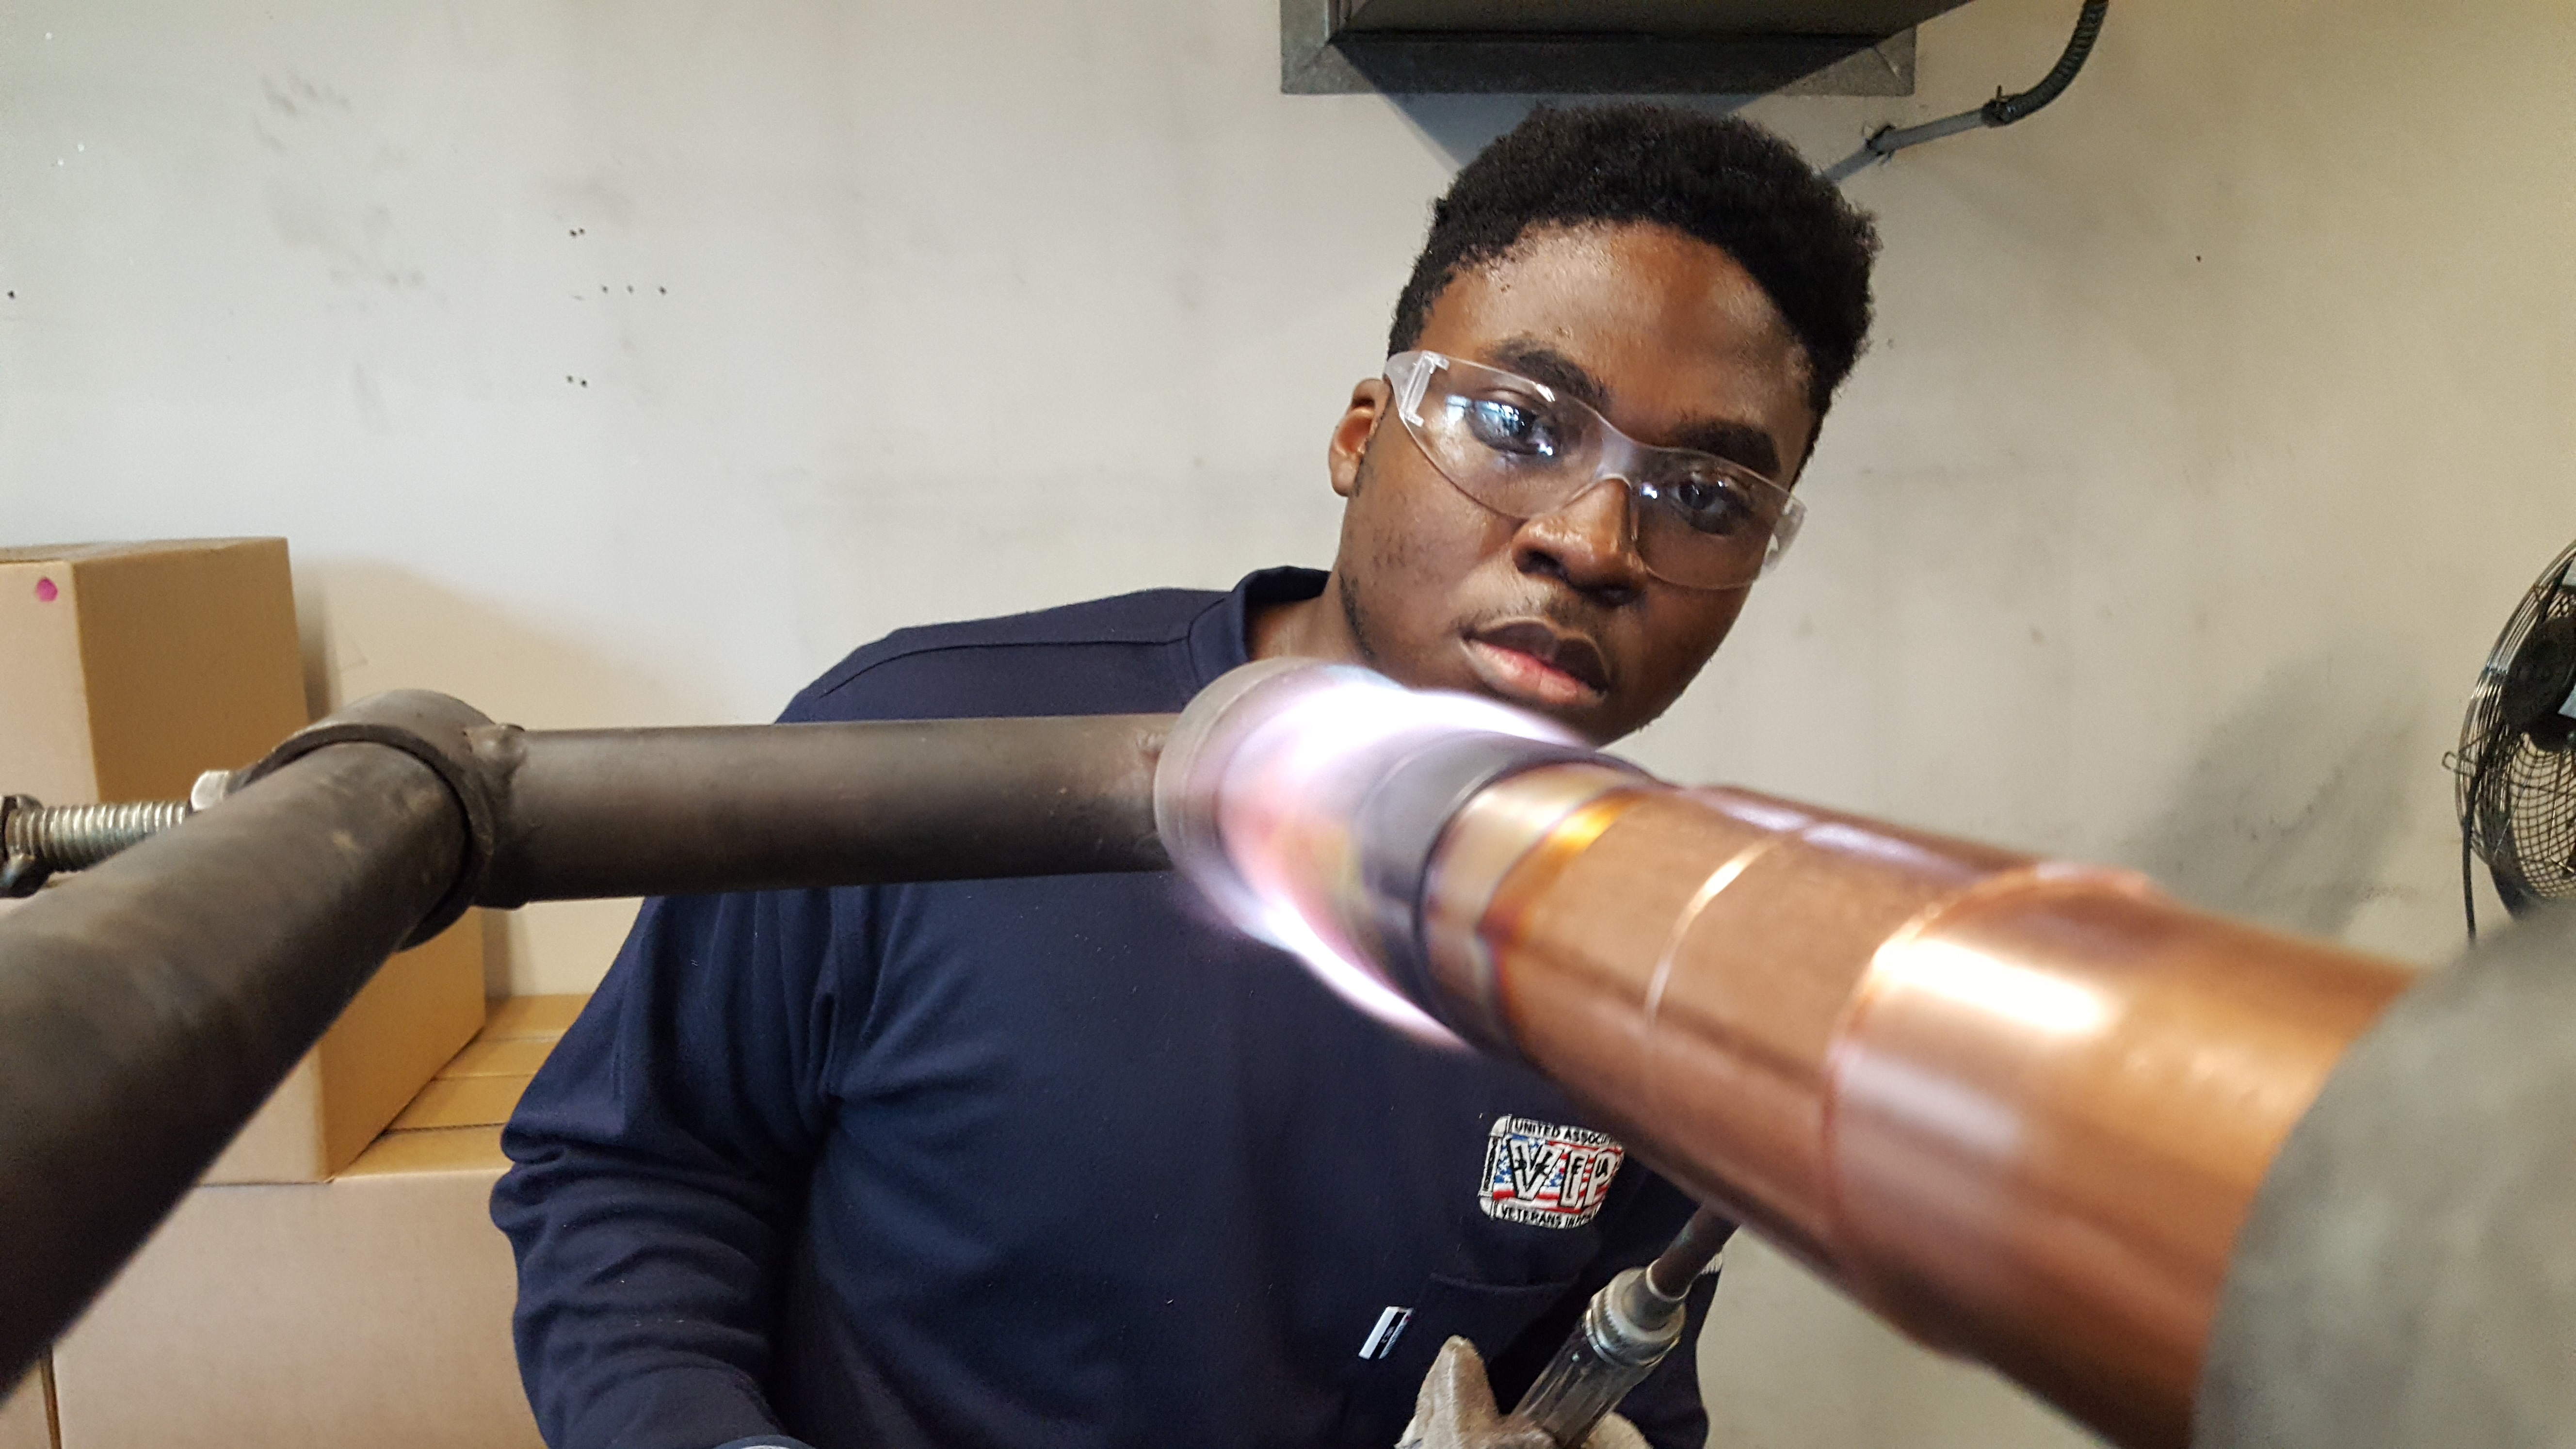 UA VIP member Kennith Smalls practices his brazing skills.